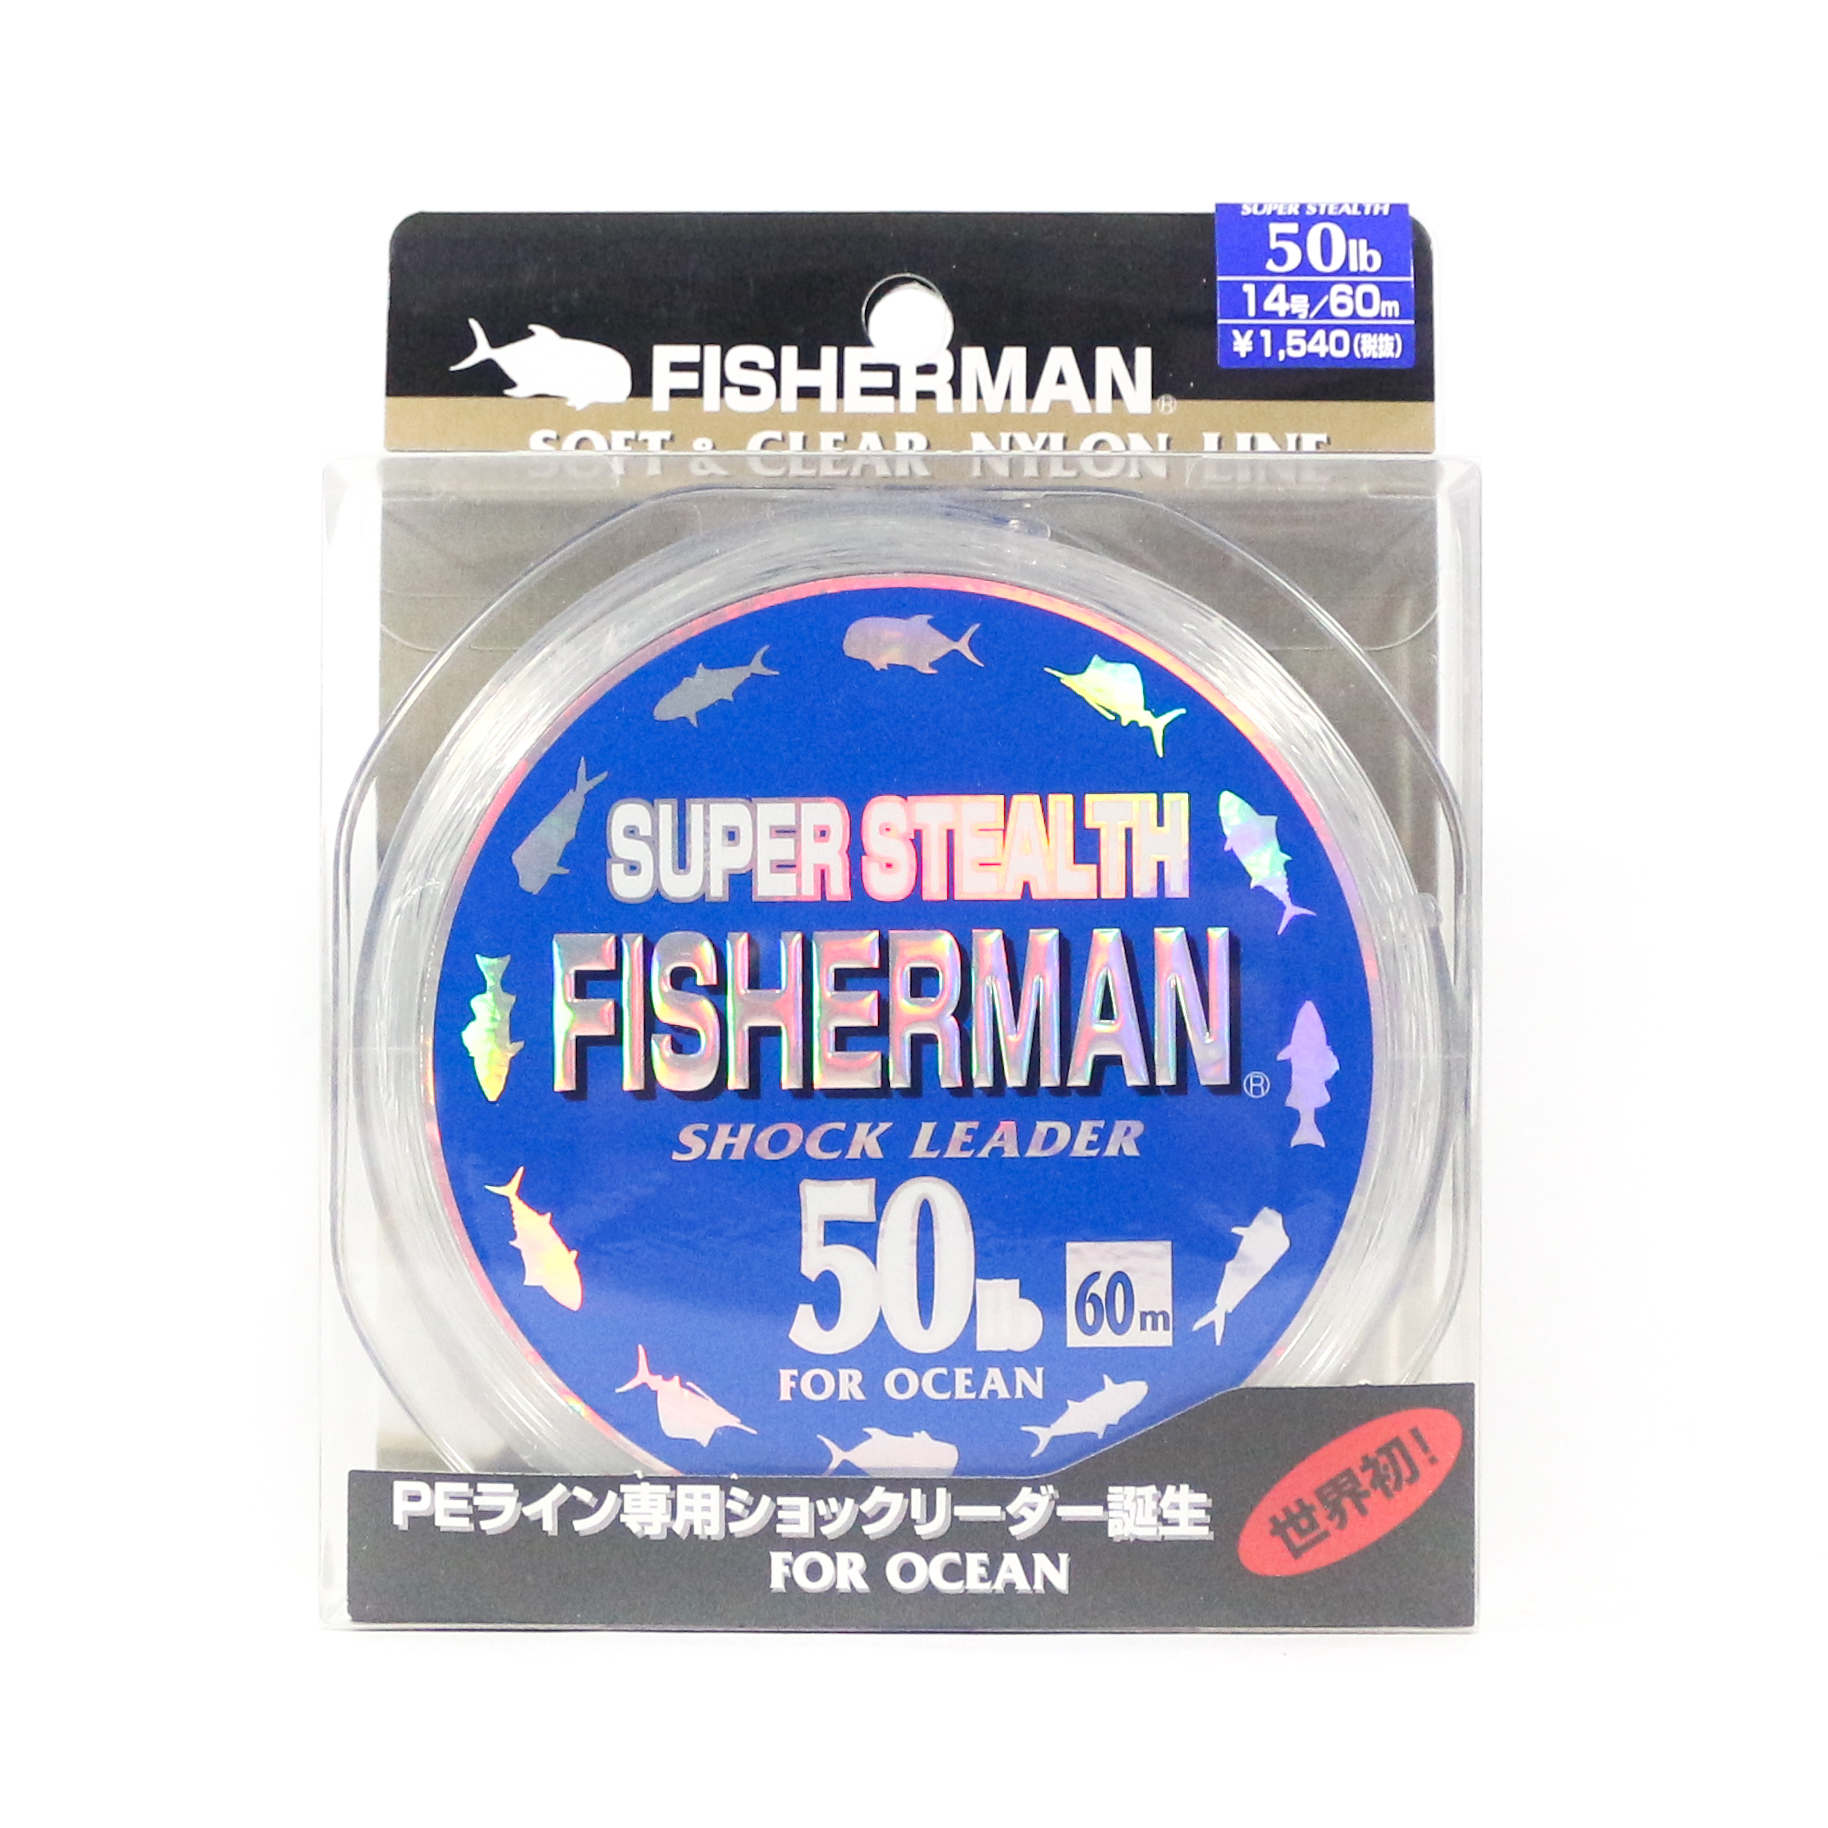 Fisherman Super Stealth Nylon Shock Leader 50 lb x 60 meter (0023)